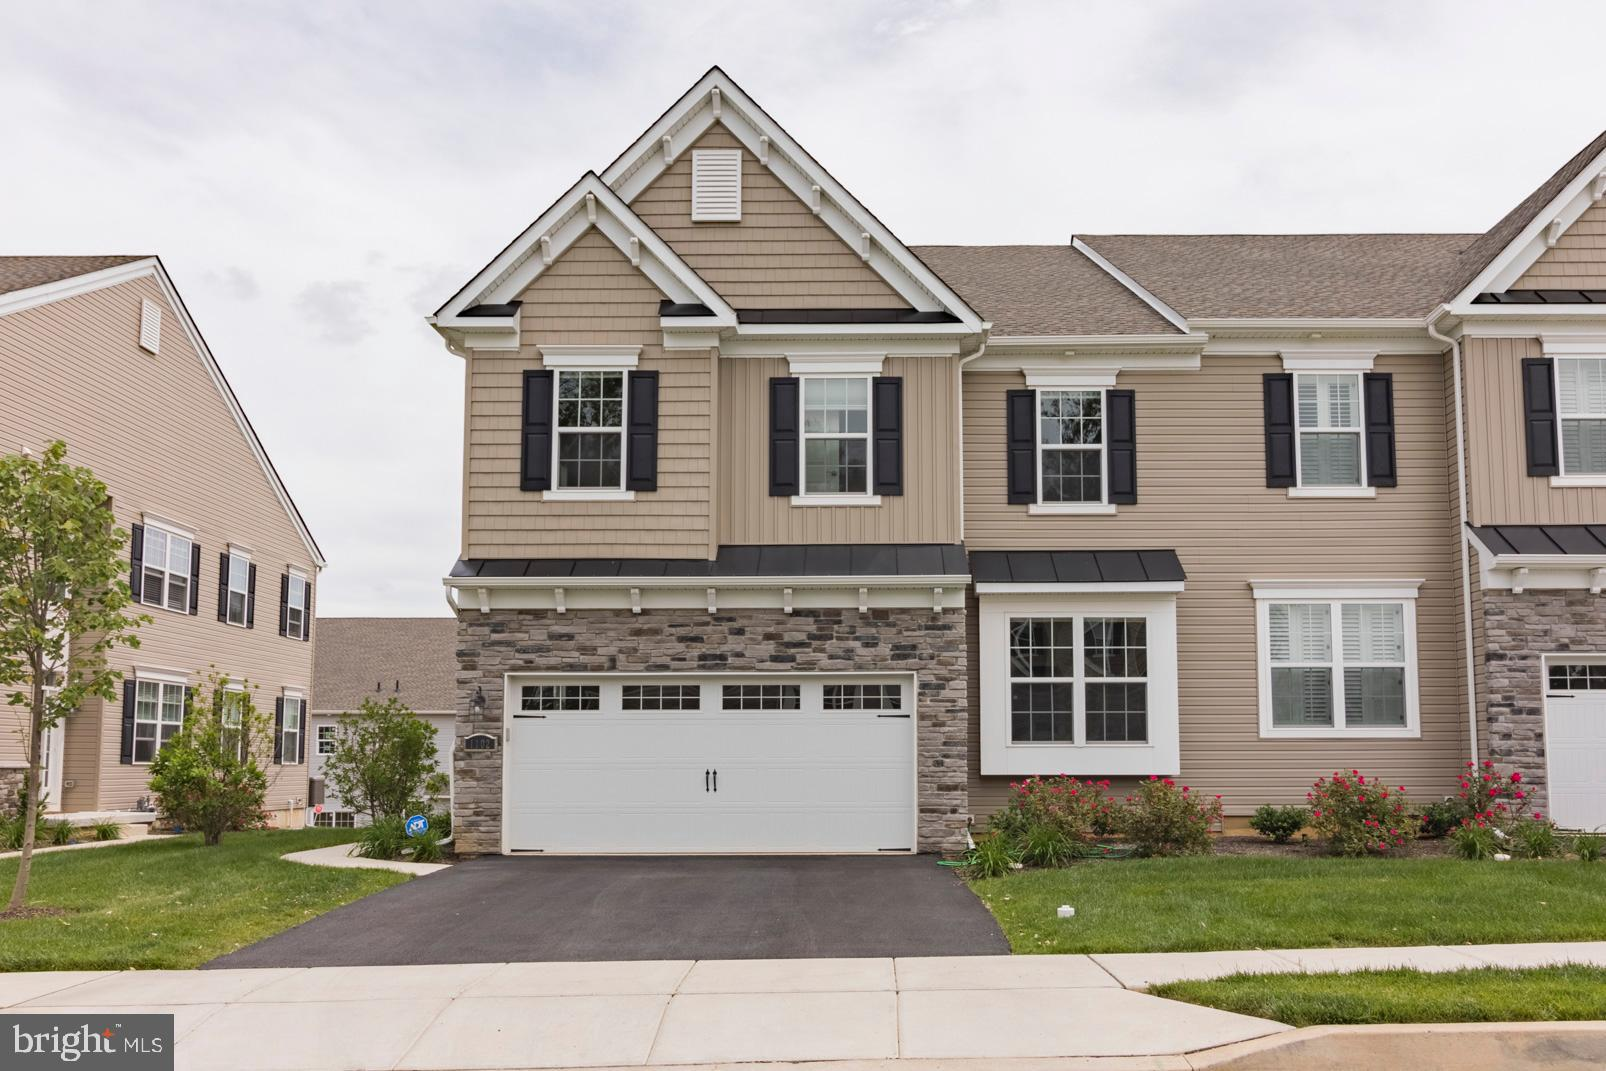 Welcome Home to 1102 Vernon Way, West Chester located in the Reserve at Glen Loch. You can move right in to this meticulously maintained 1-year old end-unit townhome, well-equipped with beautiful finishes,  finished basement and a convenient location that is within a few minutes drive of three commuter train stations. Some key upgrades include: Gourmet Kitchen with quartz countertops and marble subway tile, gas fireplace, upgraded and hardwood flooring that is extended to the 2nd floor, upgraded carpeting and designer paint colors. From the moment you walk through the front door, you'll notice the upgraded cabinetry and hardware in the Kitchen, the French doors on Flex Room, custom lighting and upgraded molding package that enhances the open main floor plan. Upstairs you'll find three spacious bedrooms, two full Bathrooms and the Laundry Room. As if you needed even more space, there is a full finished basement with additional full Bathroom and a nicely finished Garage with painted walls and epoxy coated floor.